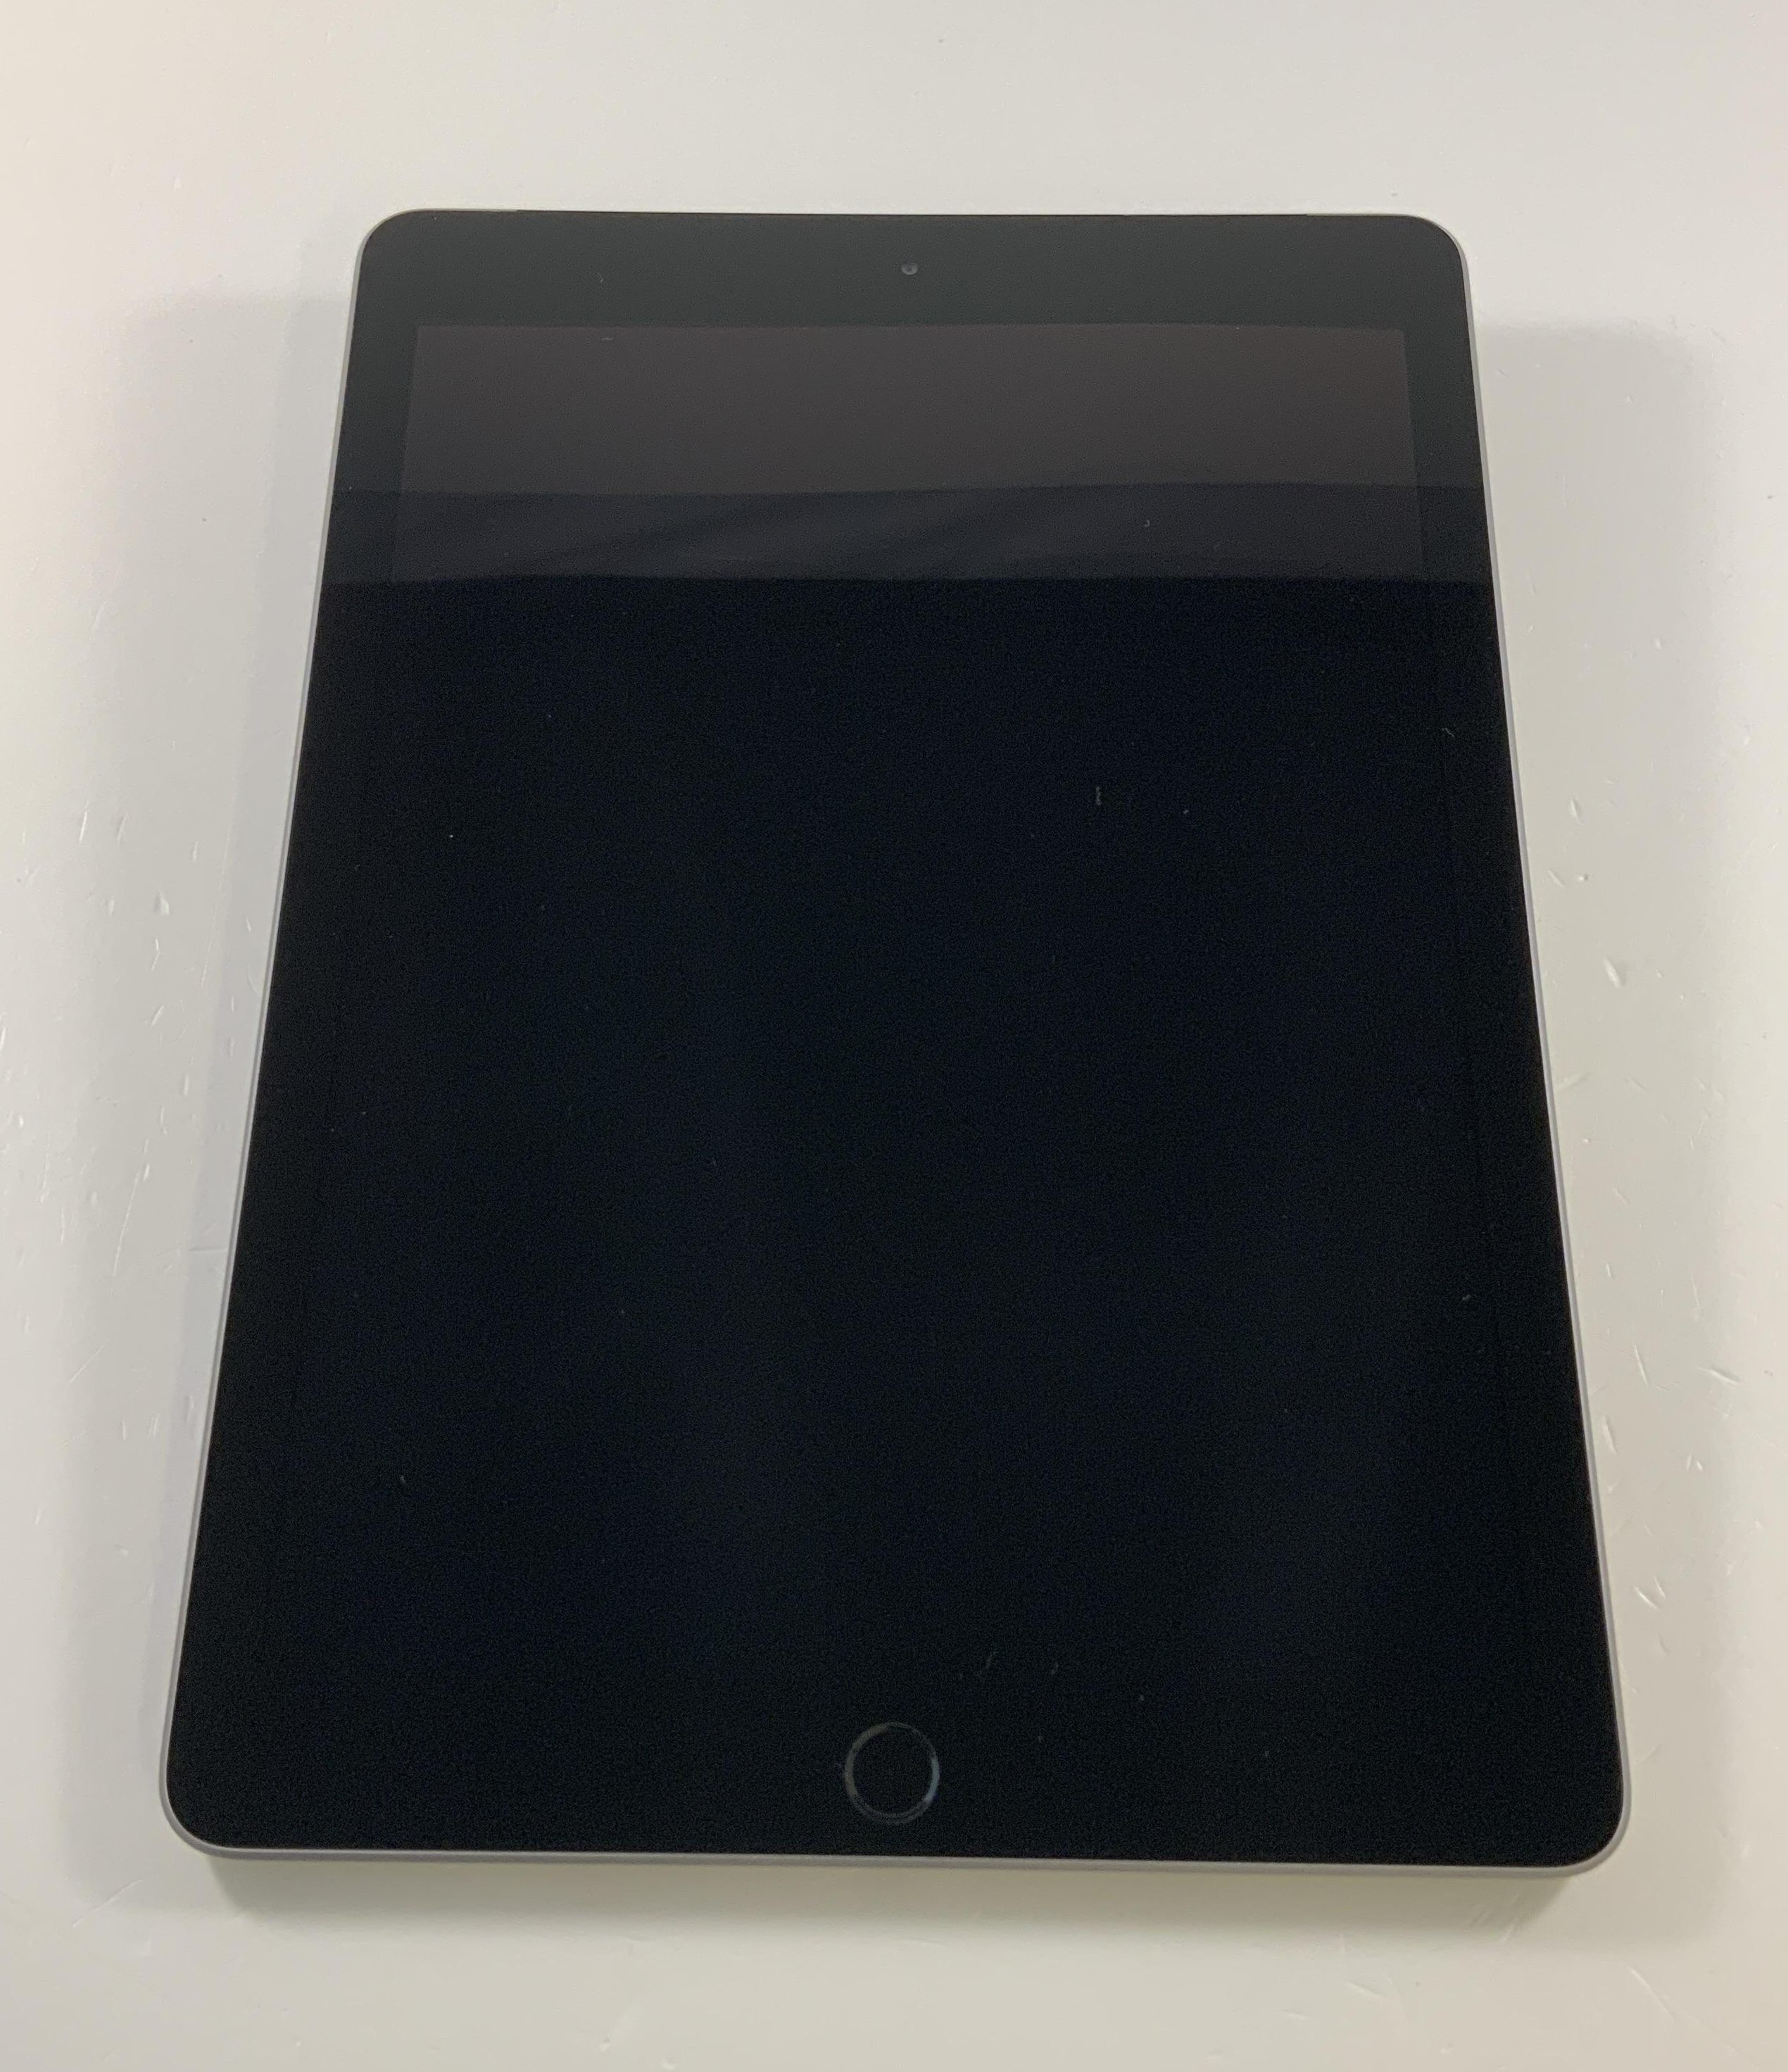 iPad 6 Wi-Fi + Cellular 32GB, 32GB, Space Gray, image 1